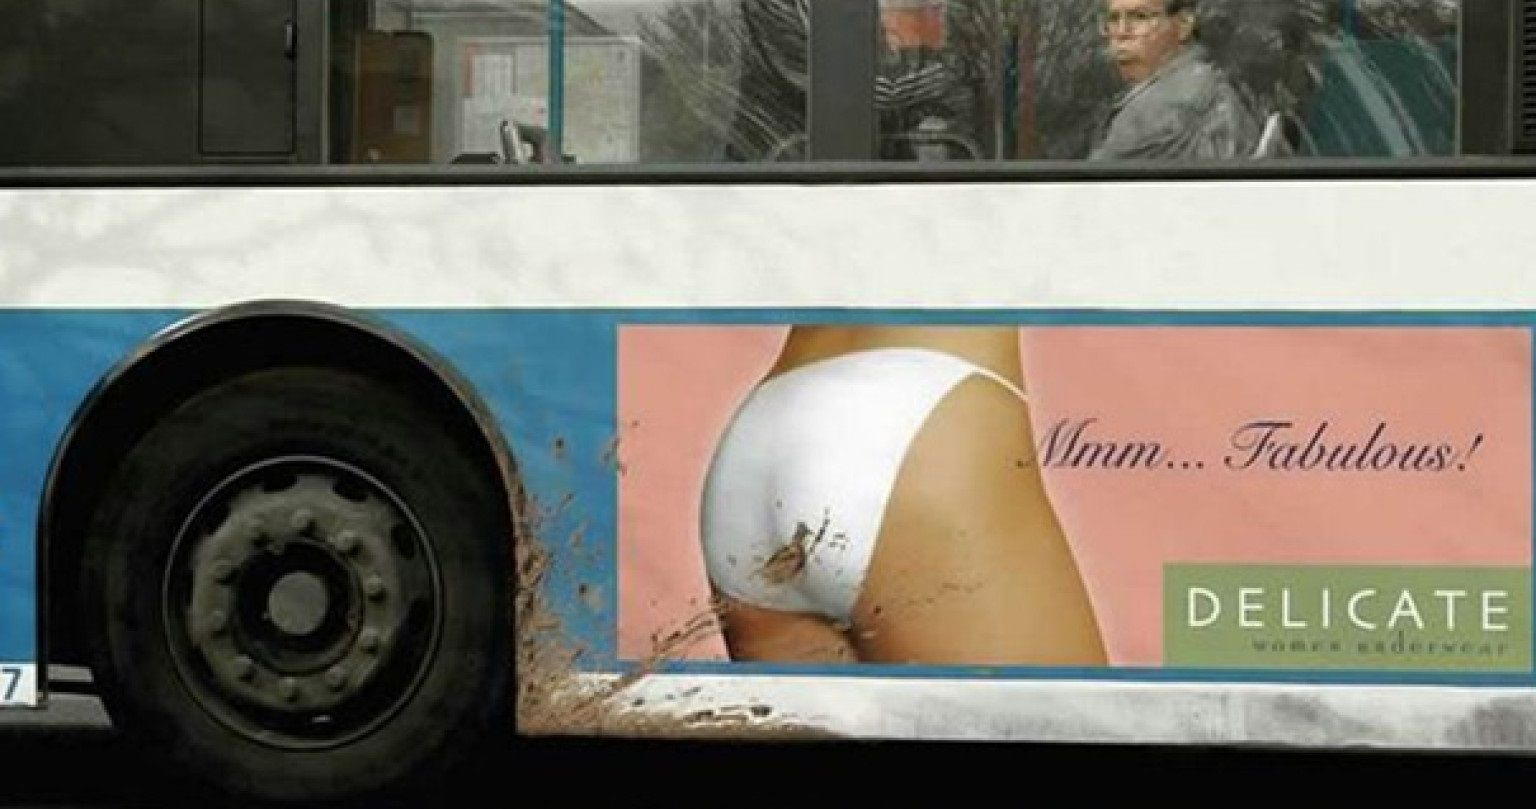 15 of the Most Hilarious Ad Placement Fails